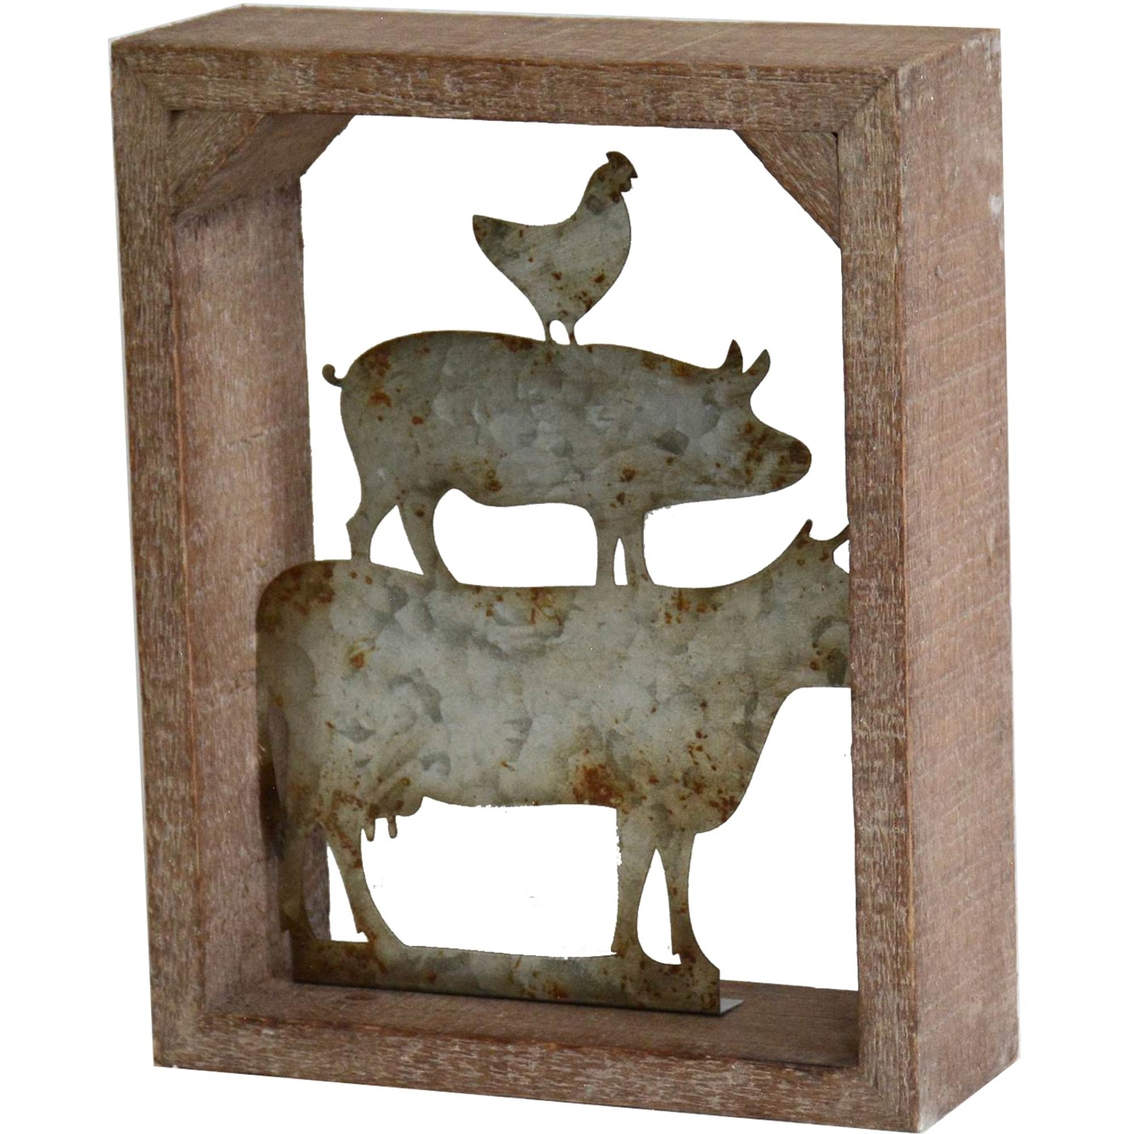 Animal Home Decor: Simply Perfect Rustic Metal And Wood Farm Animals Wall